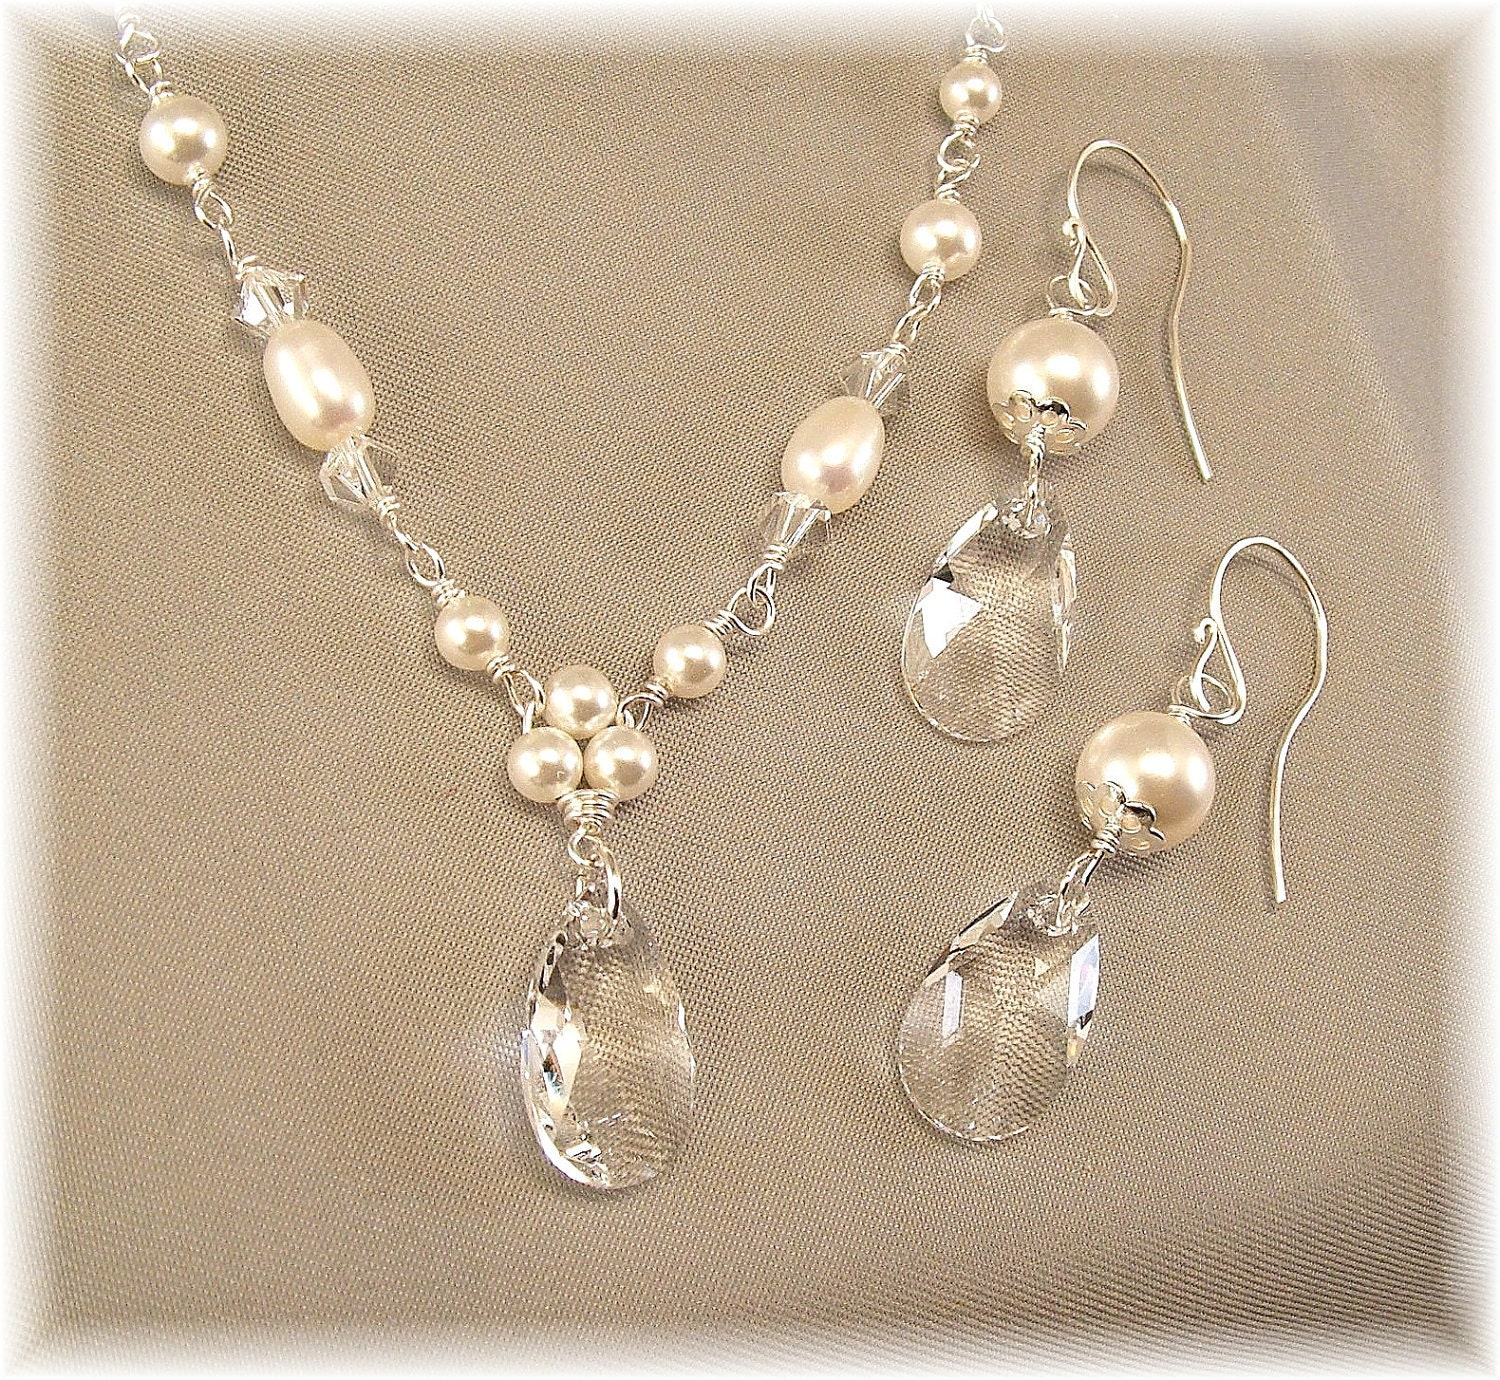 White Pearl and Crystal Necklace and Earring Set by Handwired from etsy.com